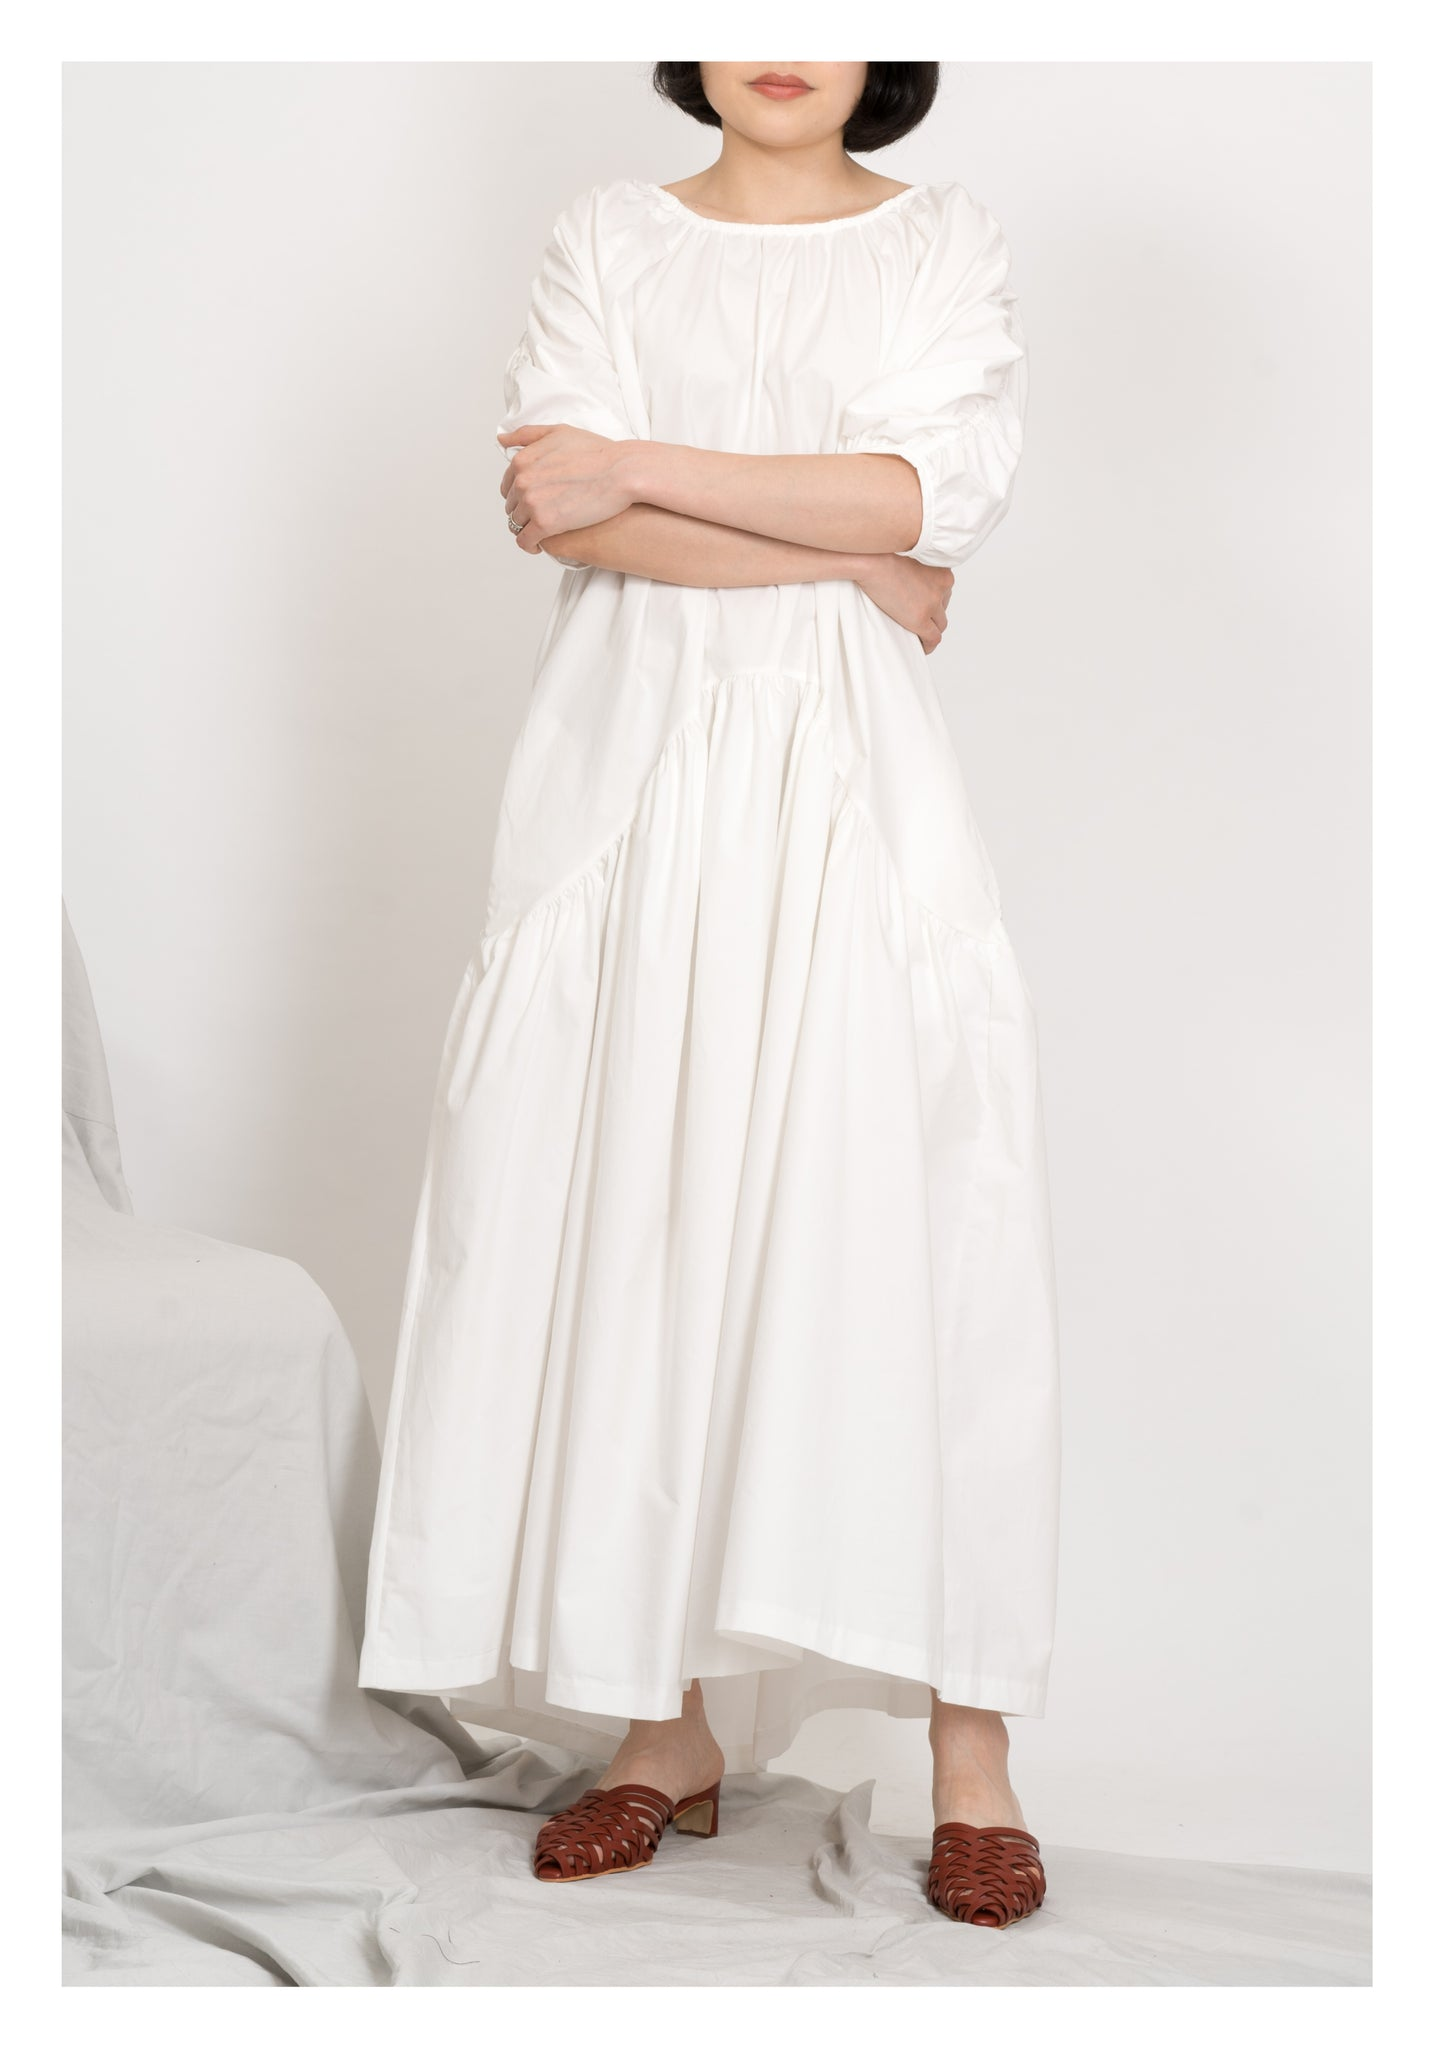 Shoulder Drawstring Pocket Dress White - whoami